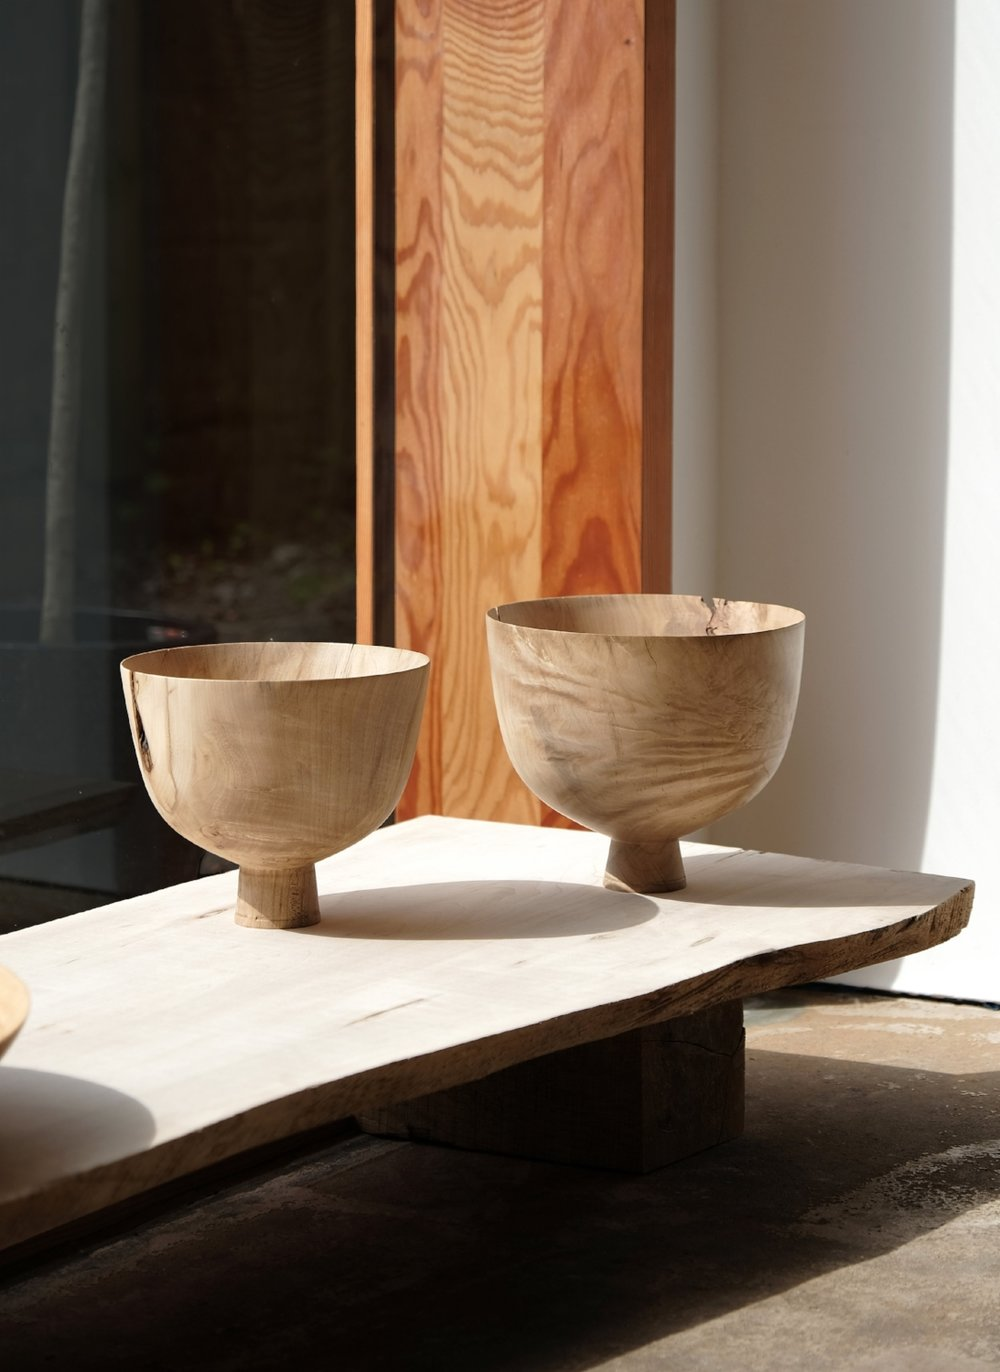 Tenanted Sycamore Vessels  | spalted sycamore wood | 2018   Installation View, Realising Landscape, The Space, Caro, Bruton